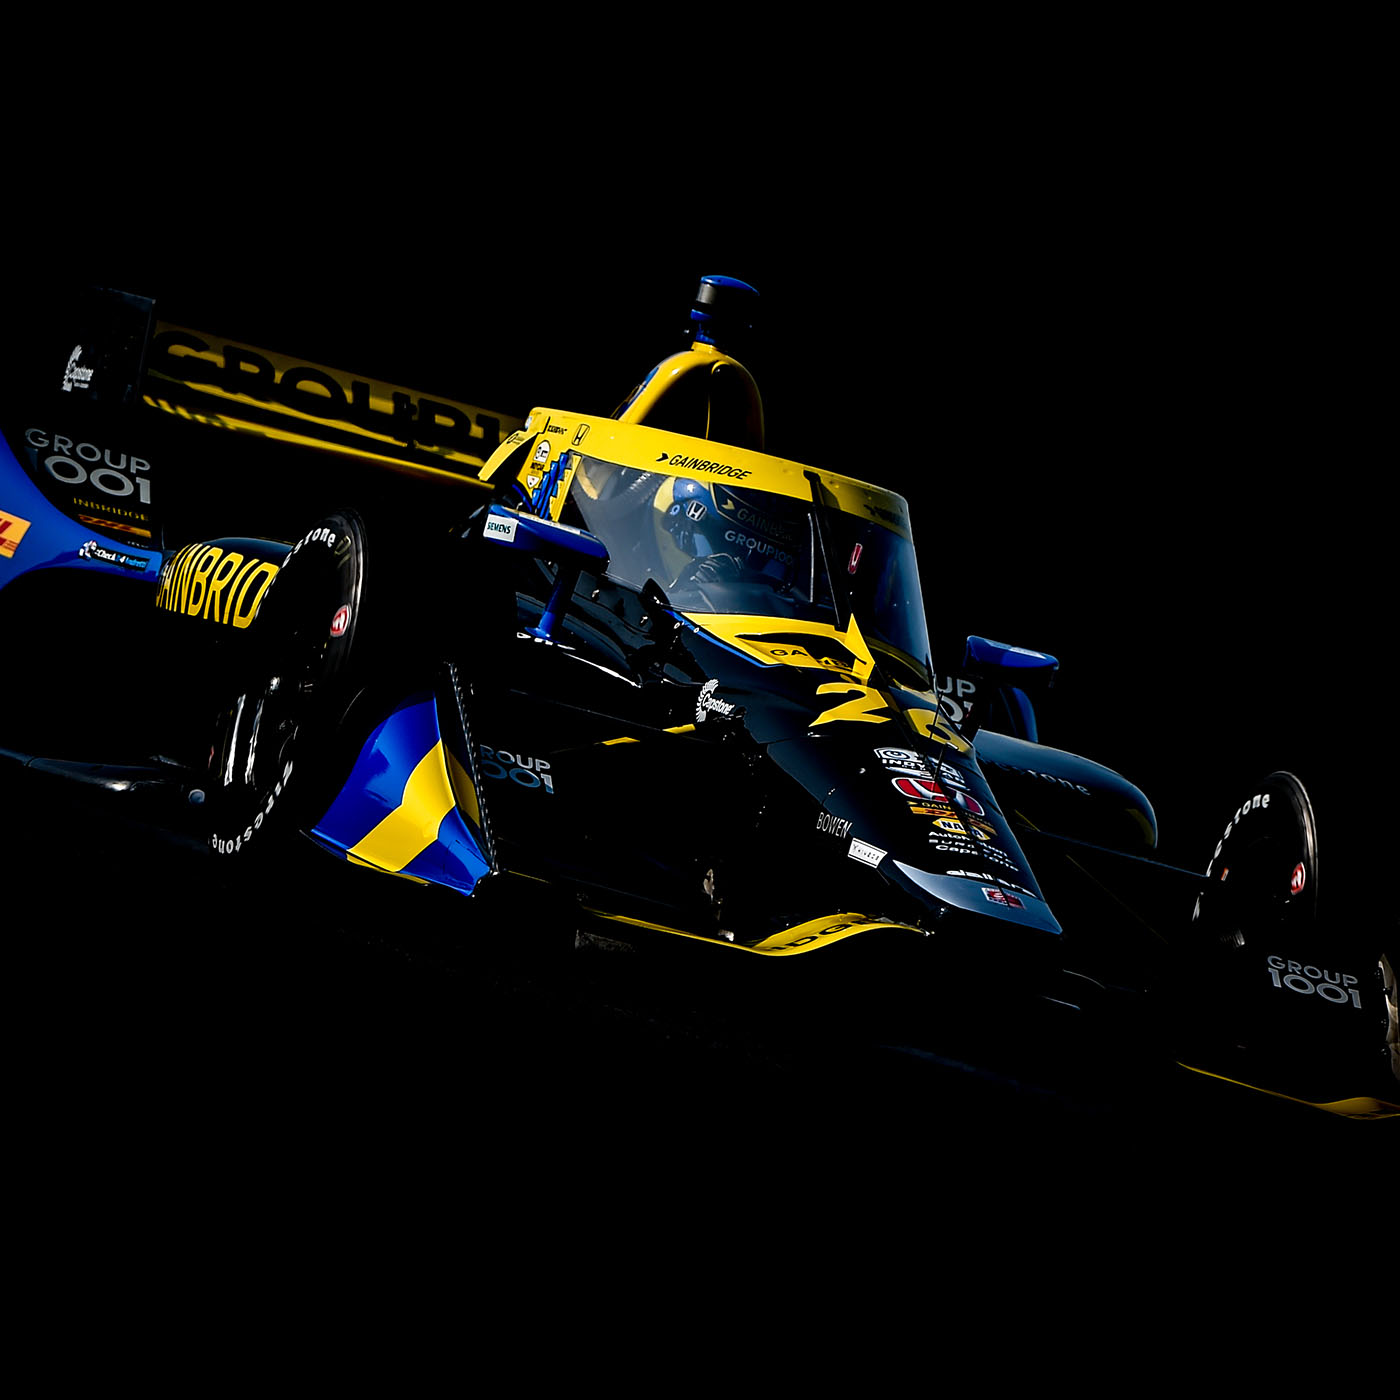 MP 950: The Week In IndyCar, Sept 29, Listener Q&A